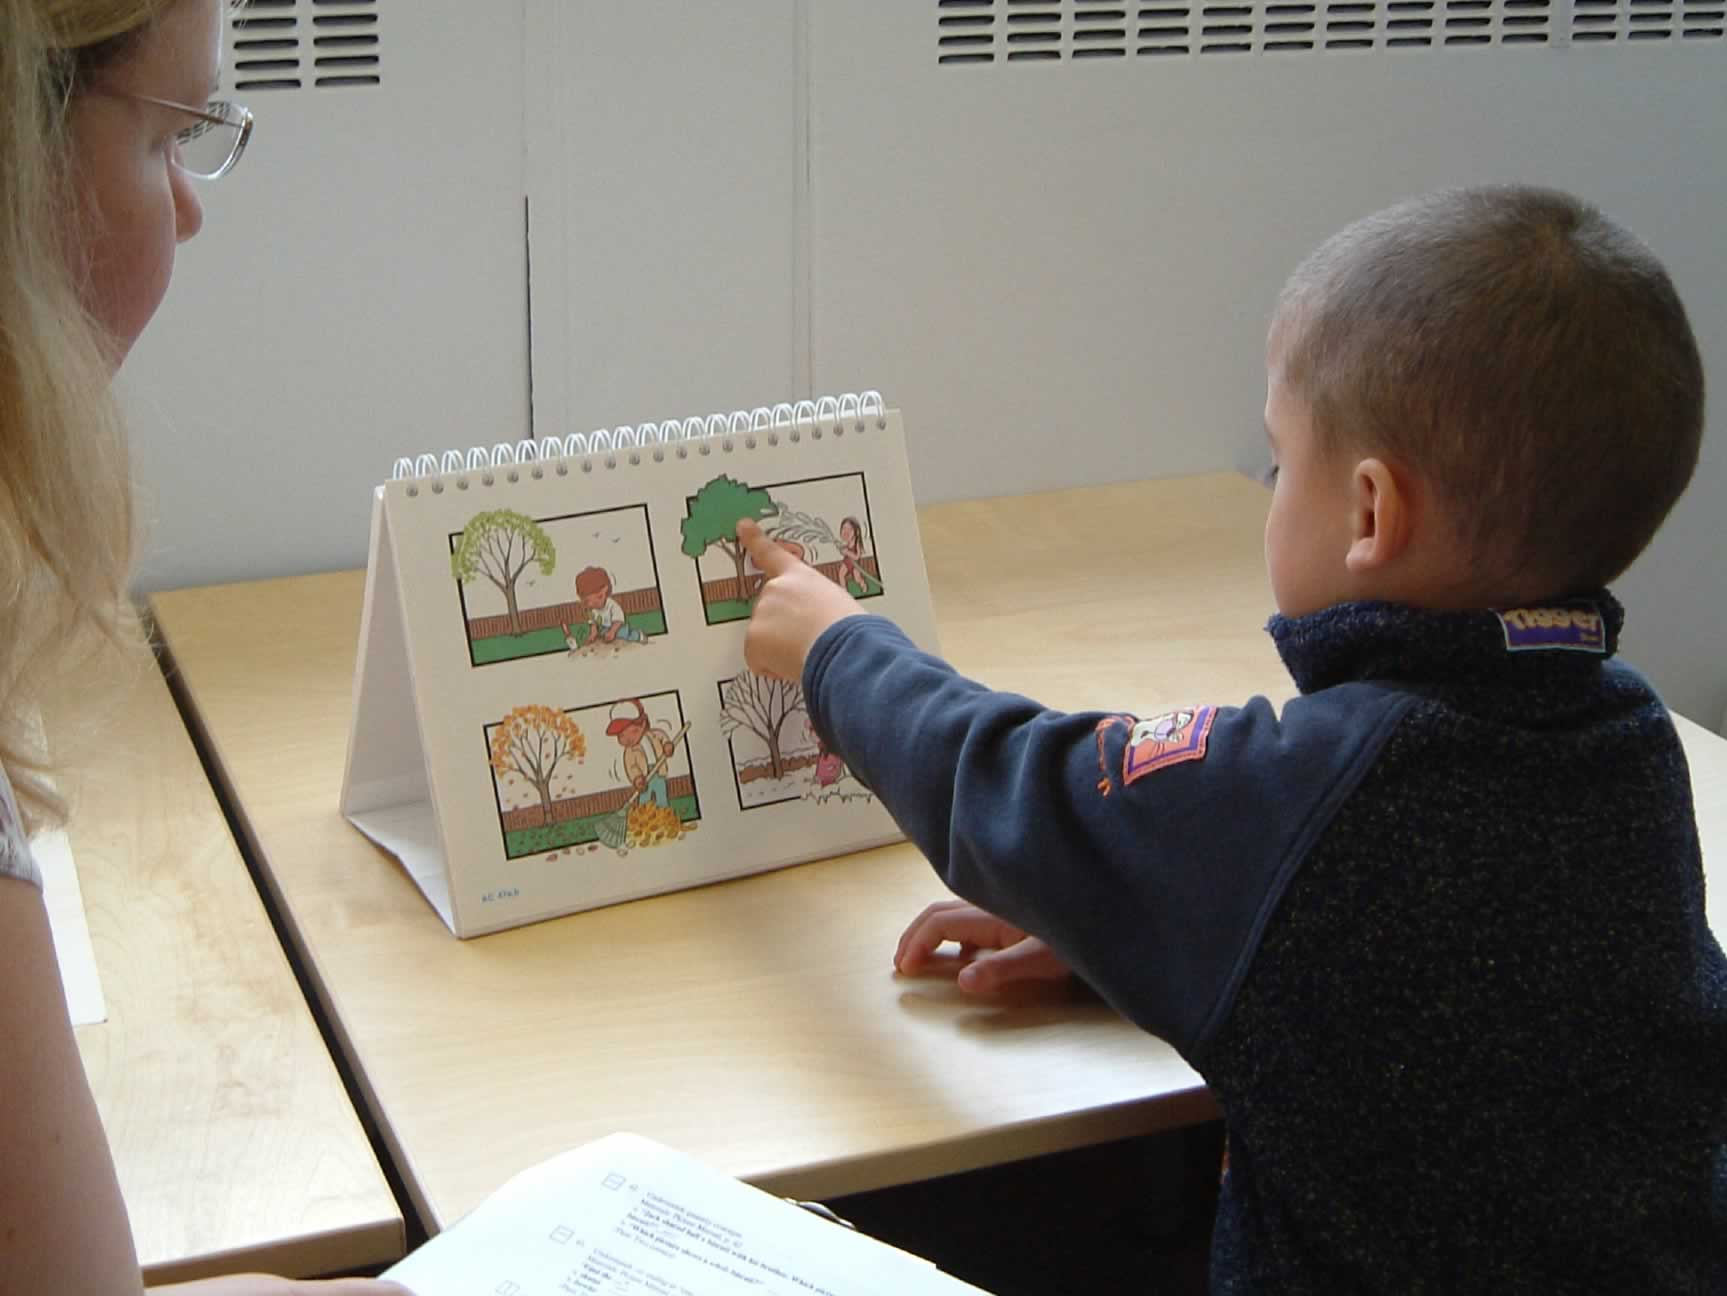 Speech - Language Pathology - Photo 3